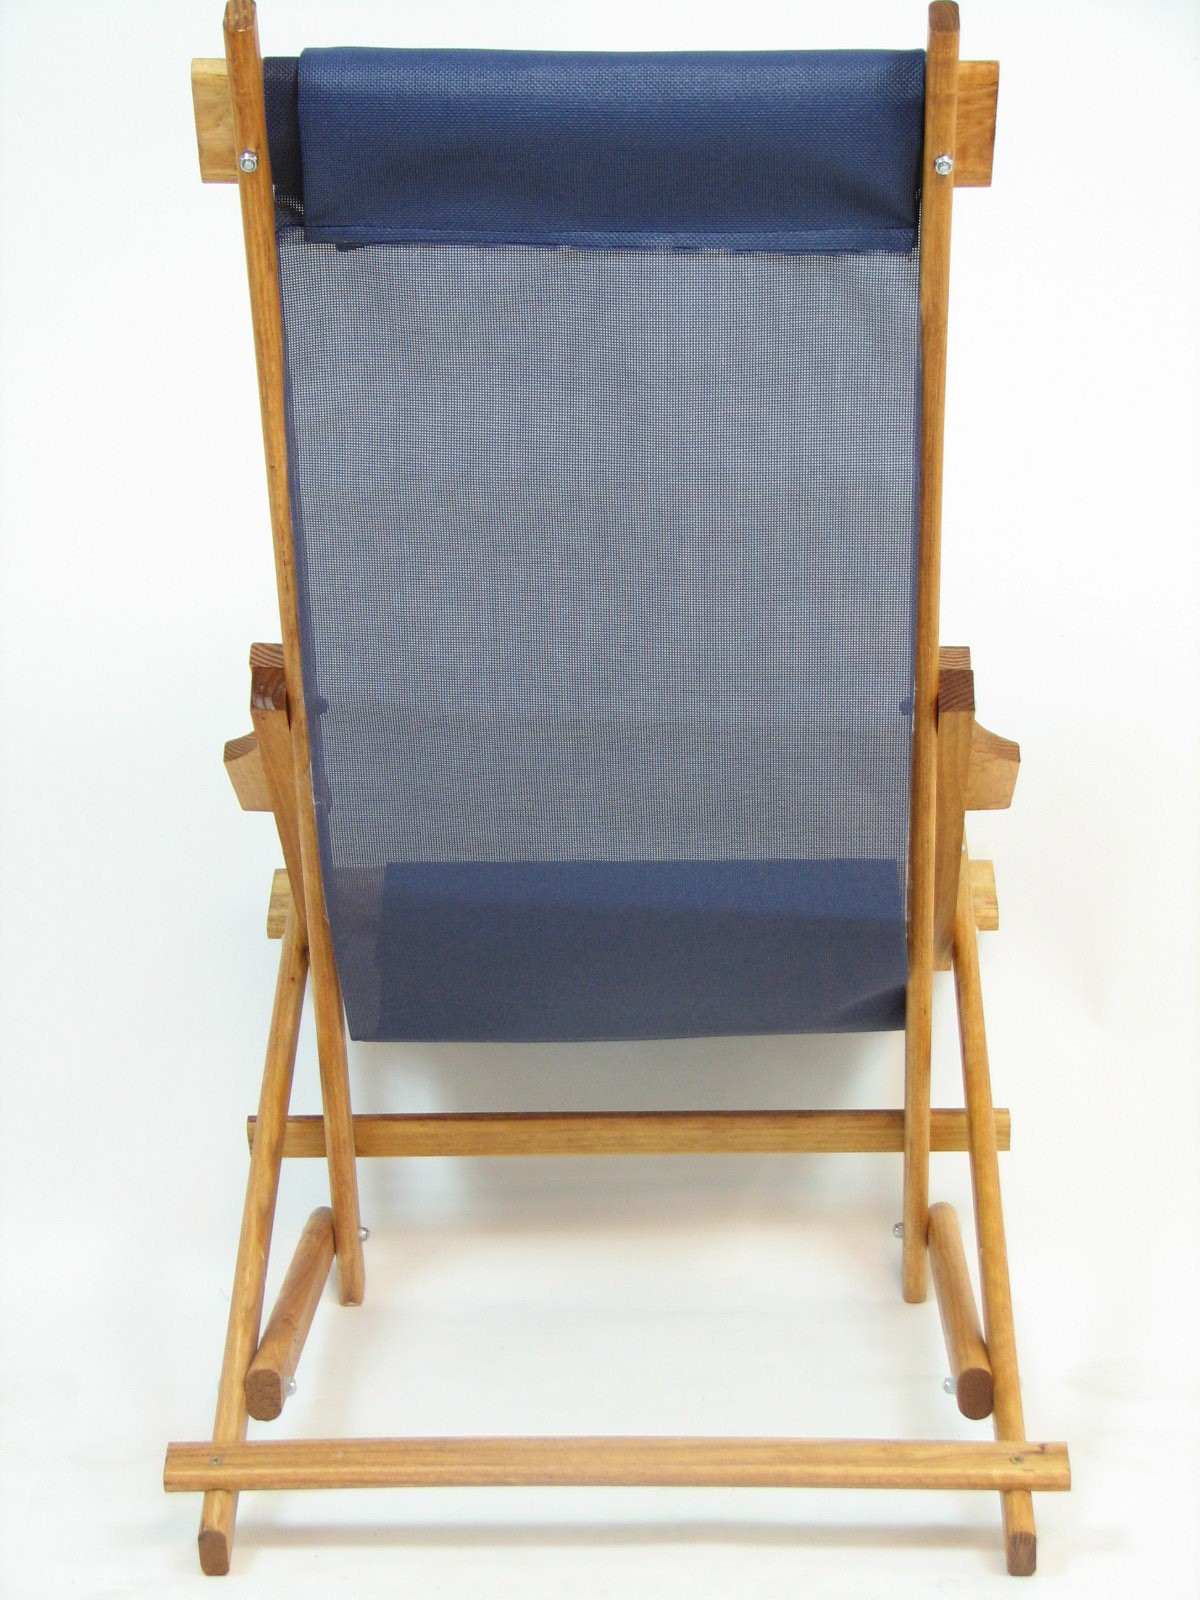 Very Impressive portraiture of Details about Wooden Folding Rocking Chair Navy New with #966B35 color and 1200x1600 pixels